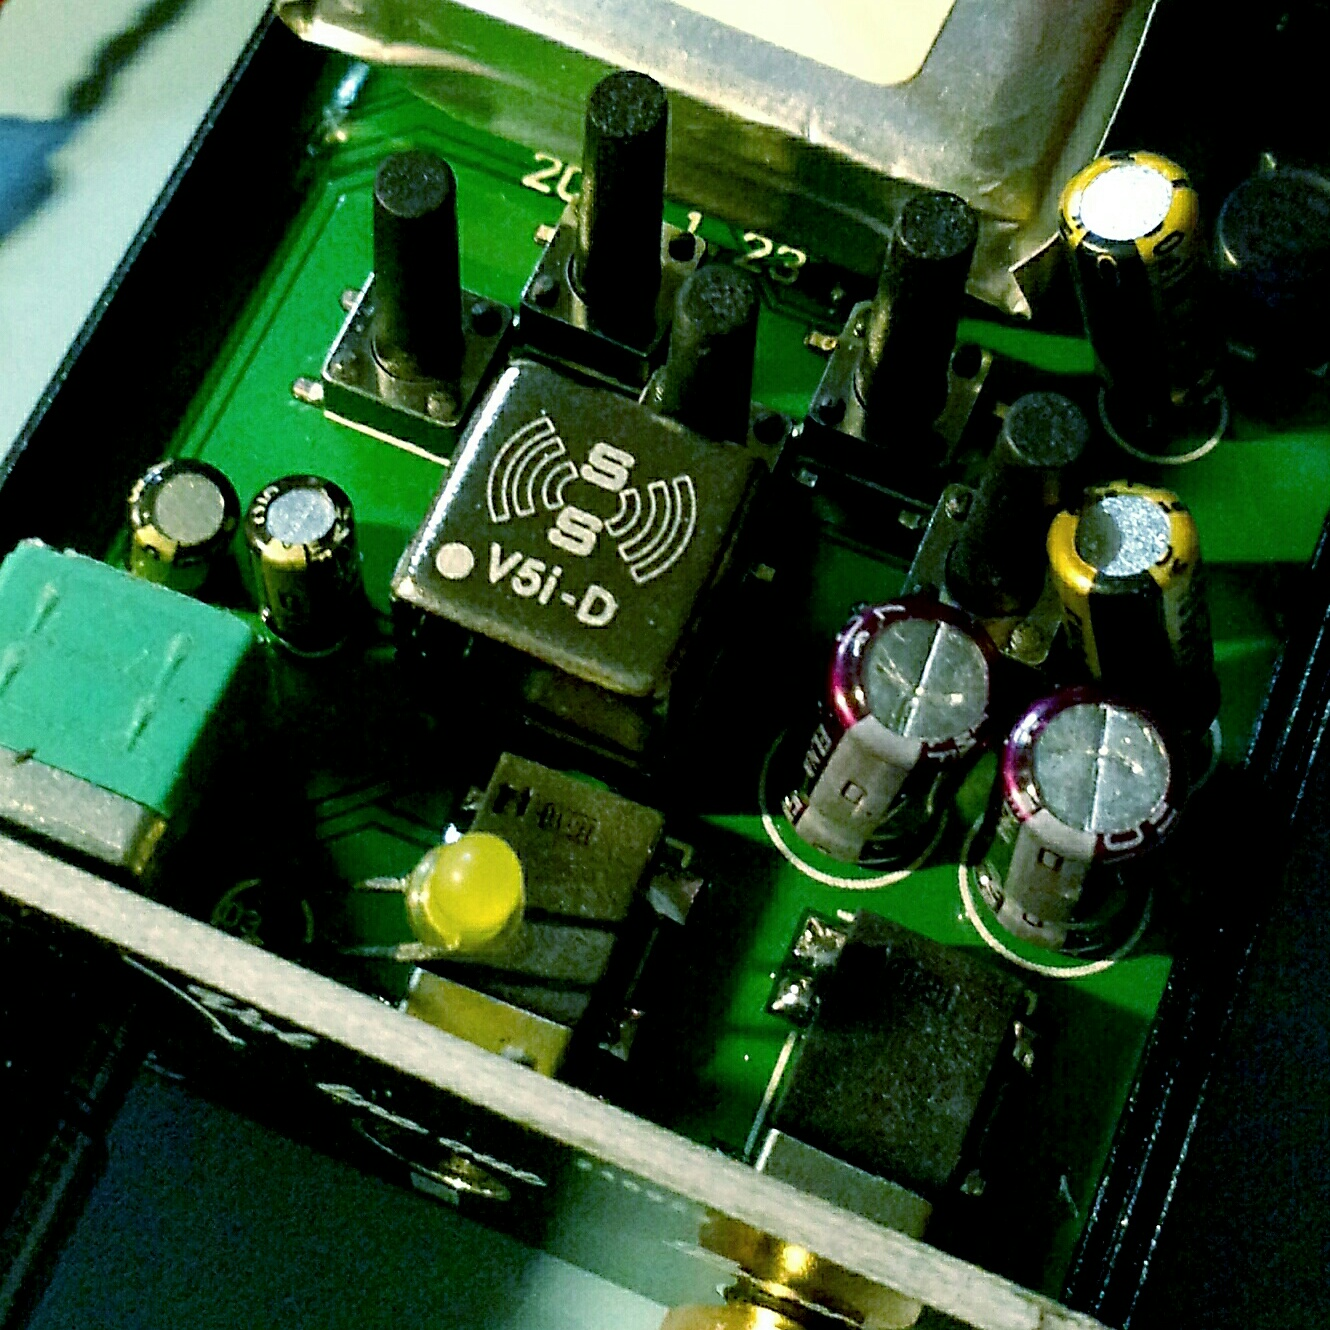 Burson Audio Supreme Sound Opamp V5i Reviews Page 3 Headphone Operational Amplifier But Many Others Dual Amplifiers Will Fit Too P70531 180203 001